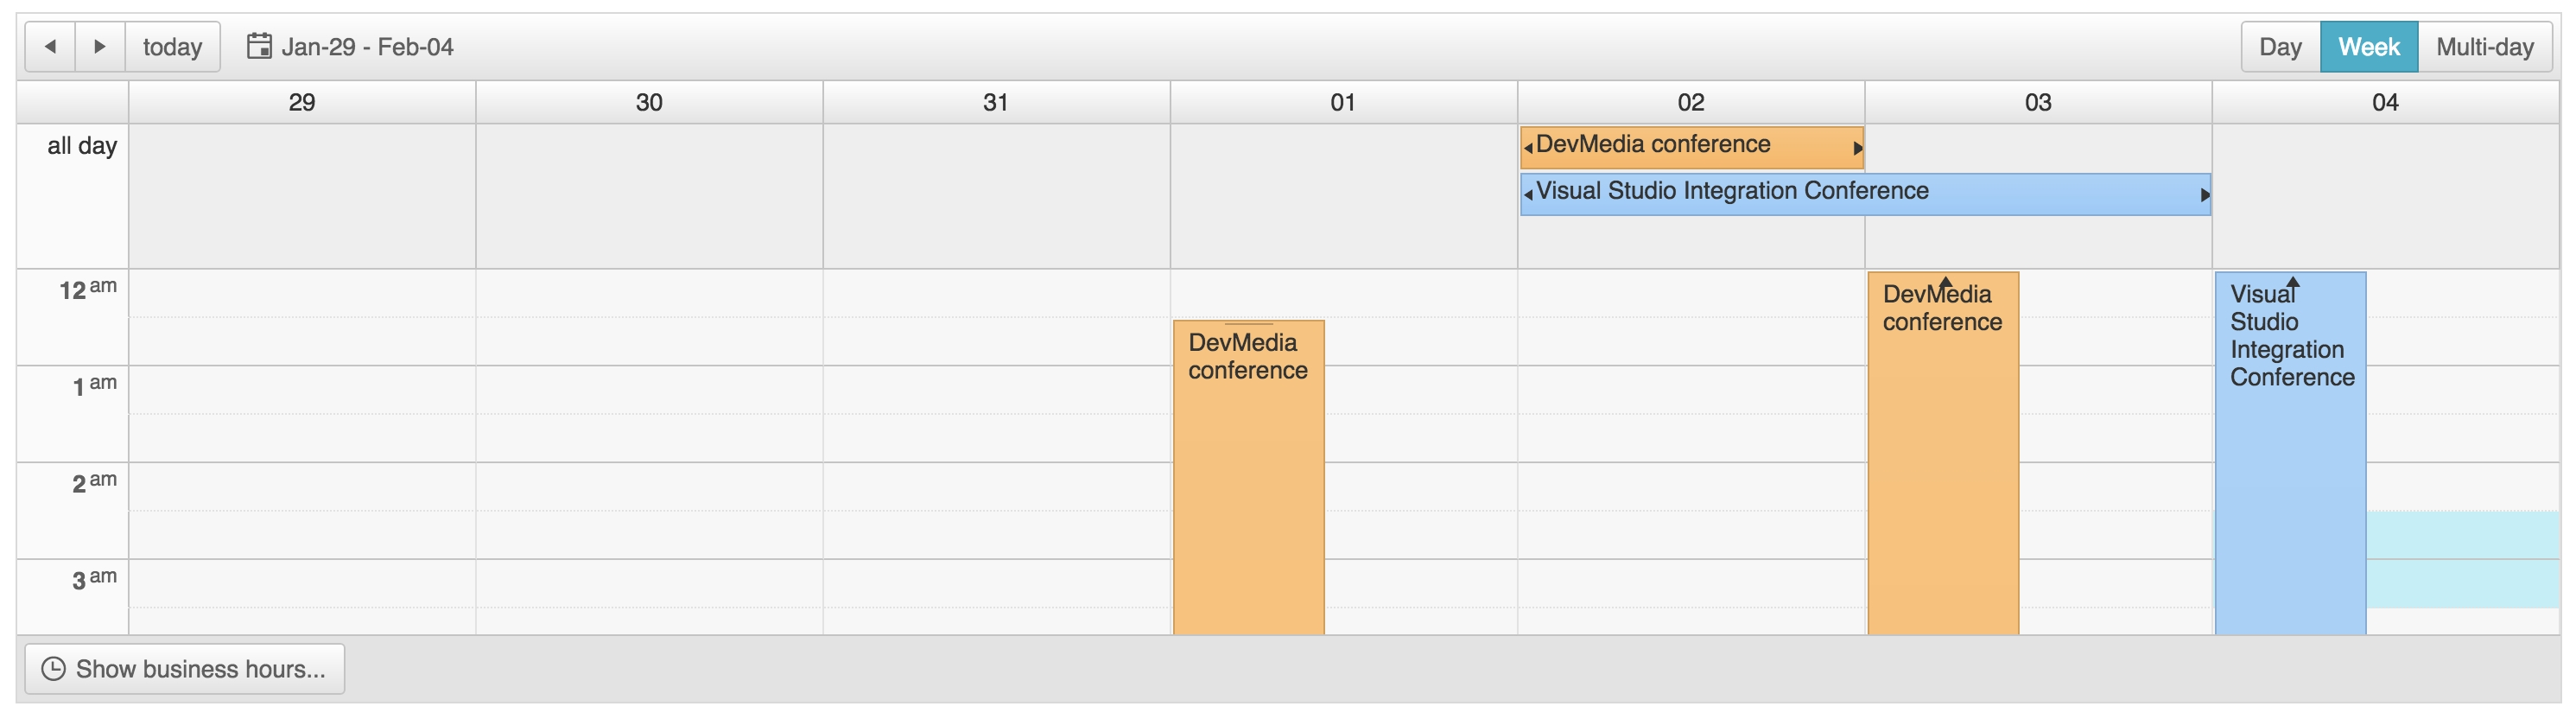 Scheduler Week View Multi-Day Events · Issue #10 · Telerik